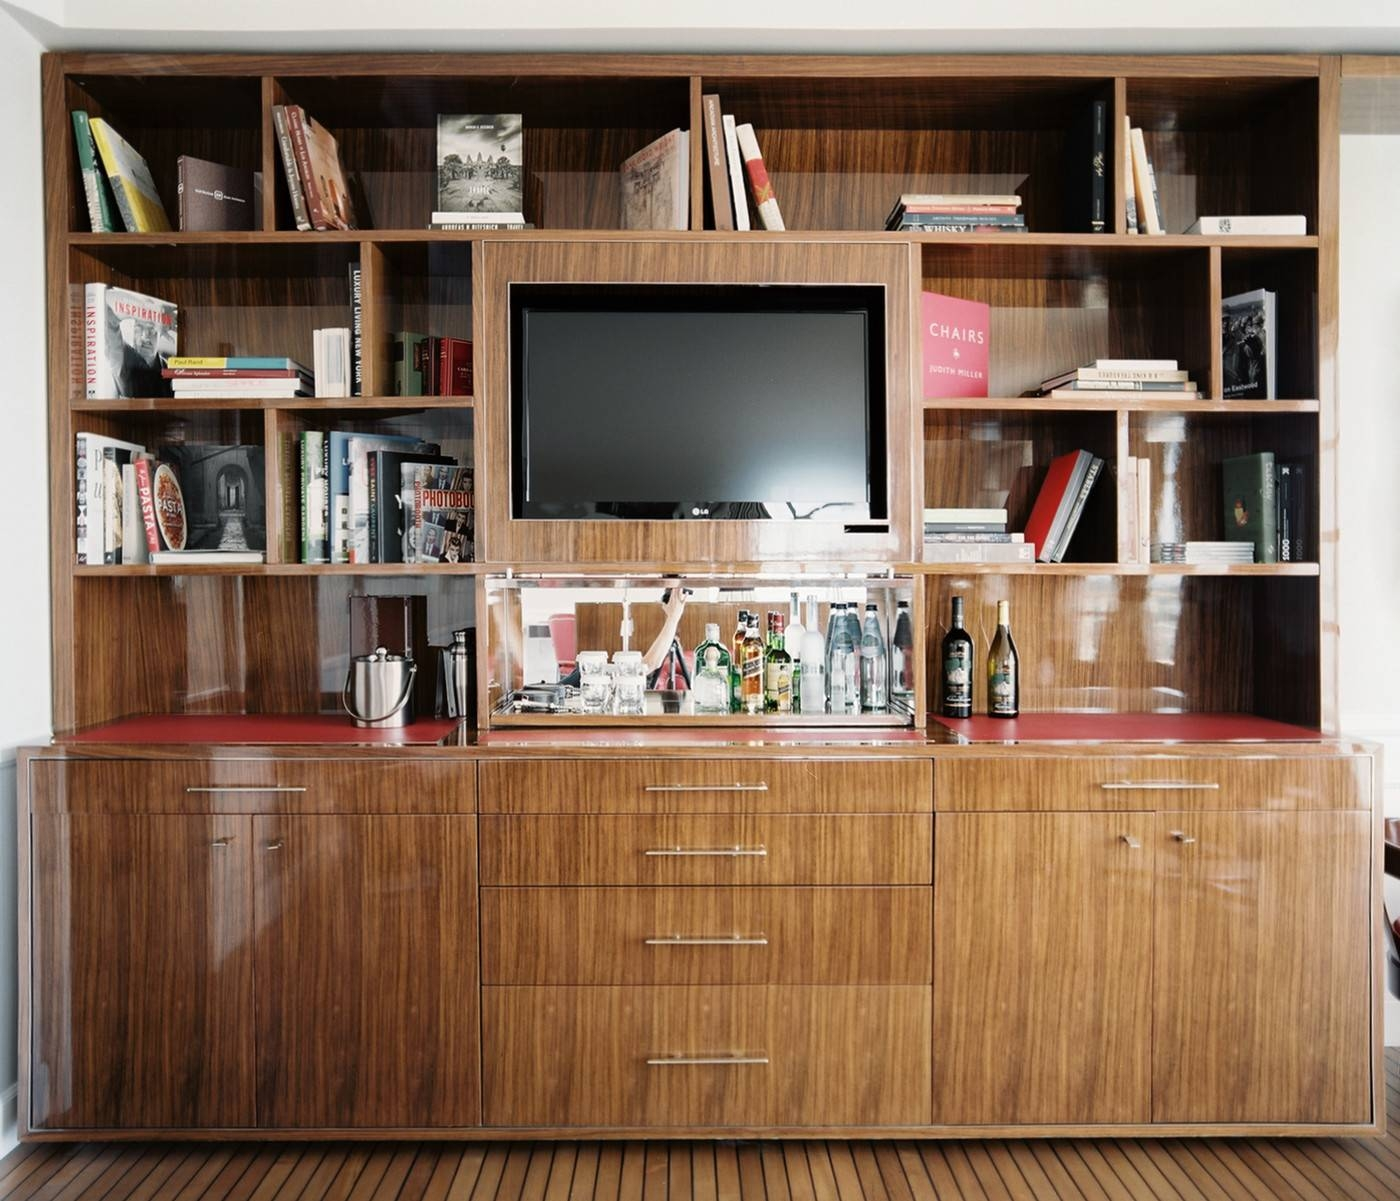 Bookcase Tv Stand Photos, Design, Ideas, Remodel, And Decor – Lonny With Tv Stands And Bookshelf (View 7 of 15)